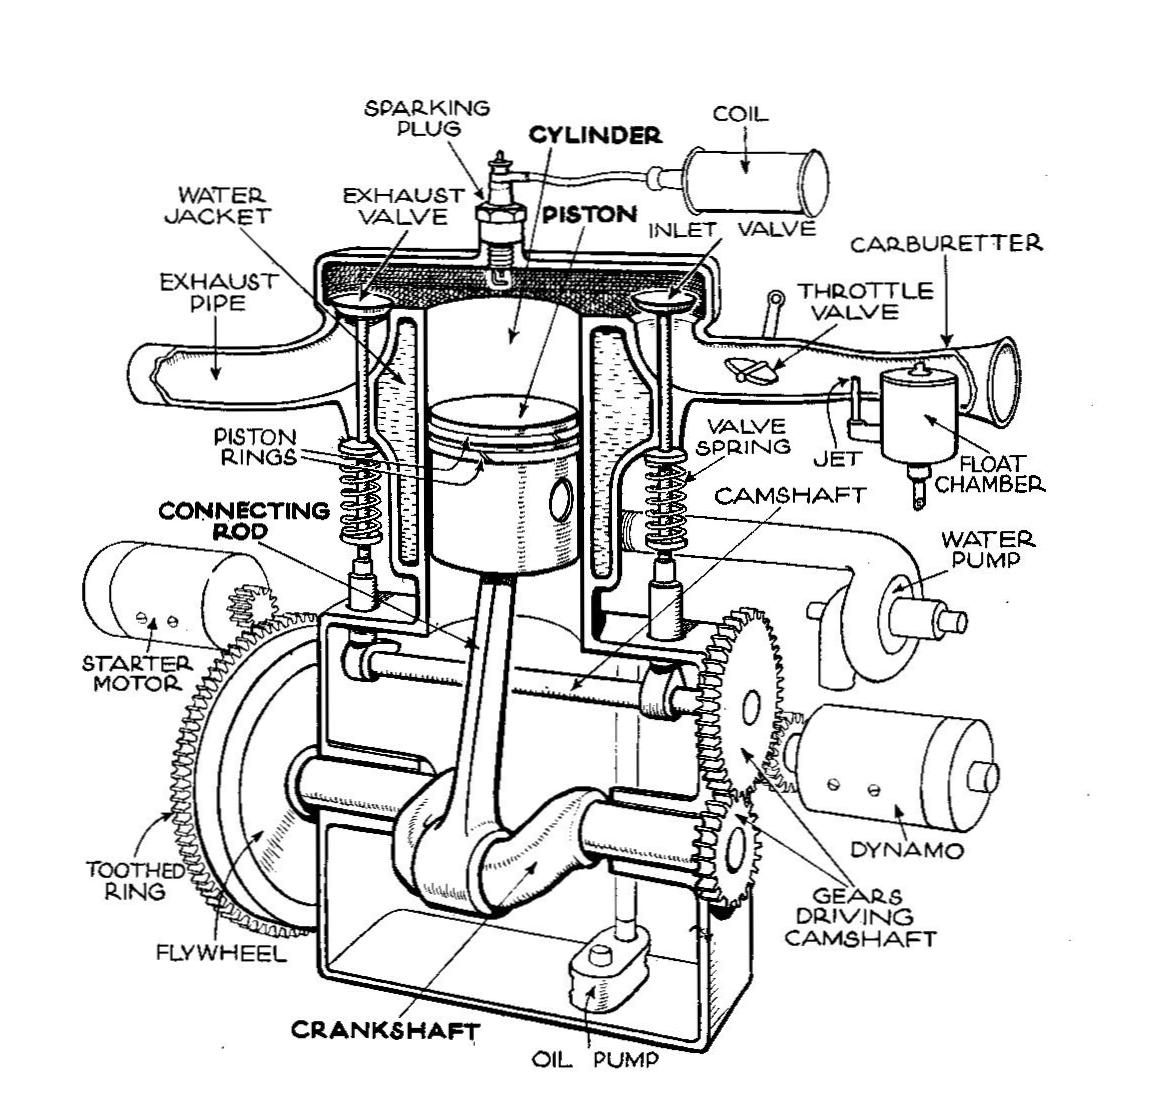 Engine Diagram Pictures With Labels Ford Truck Share The